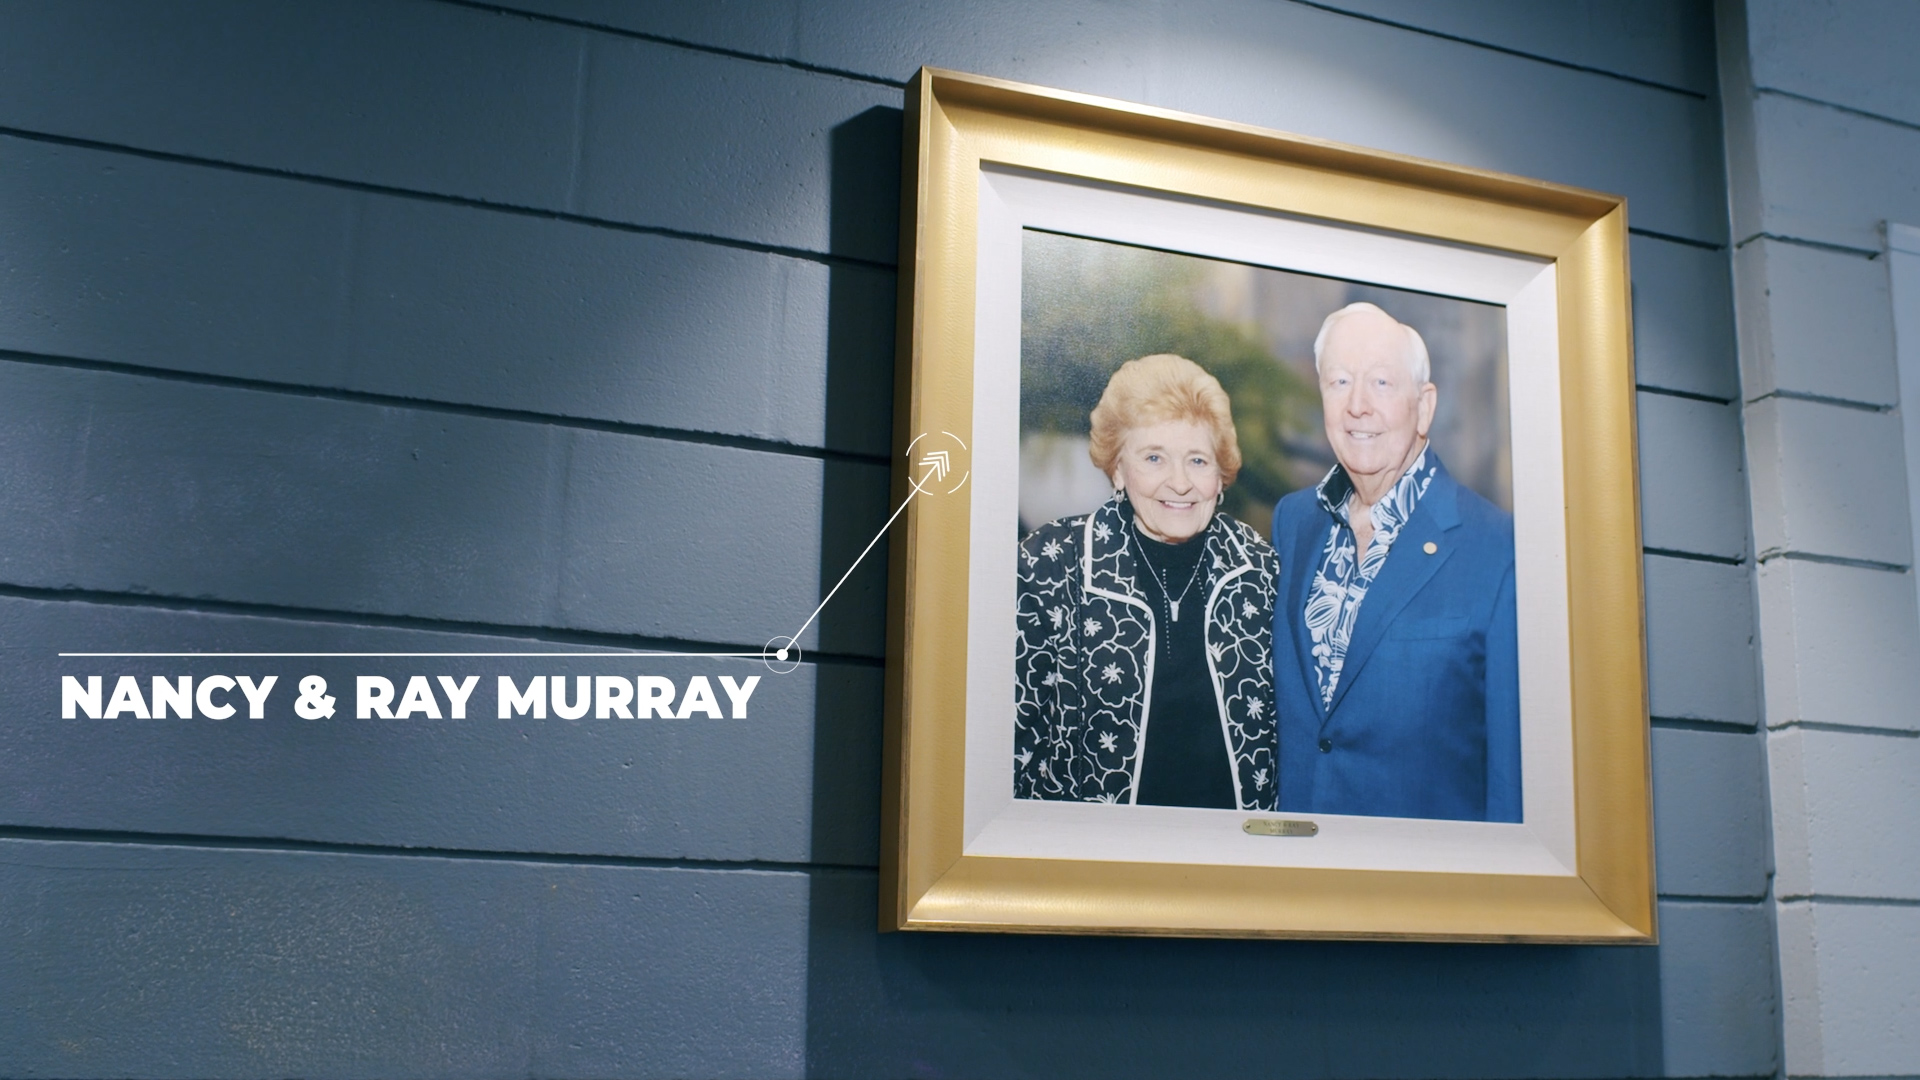 Nancy & Ray Murray